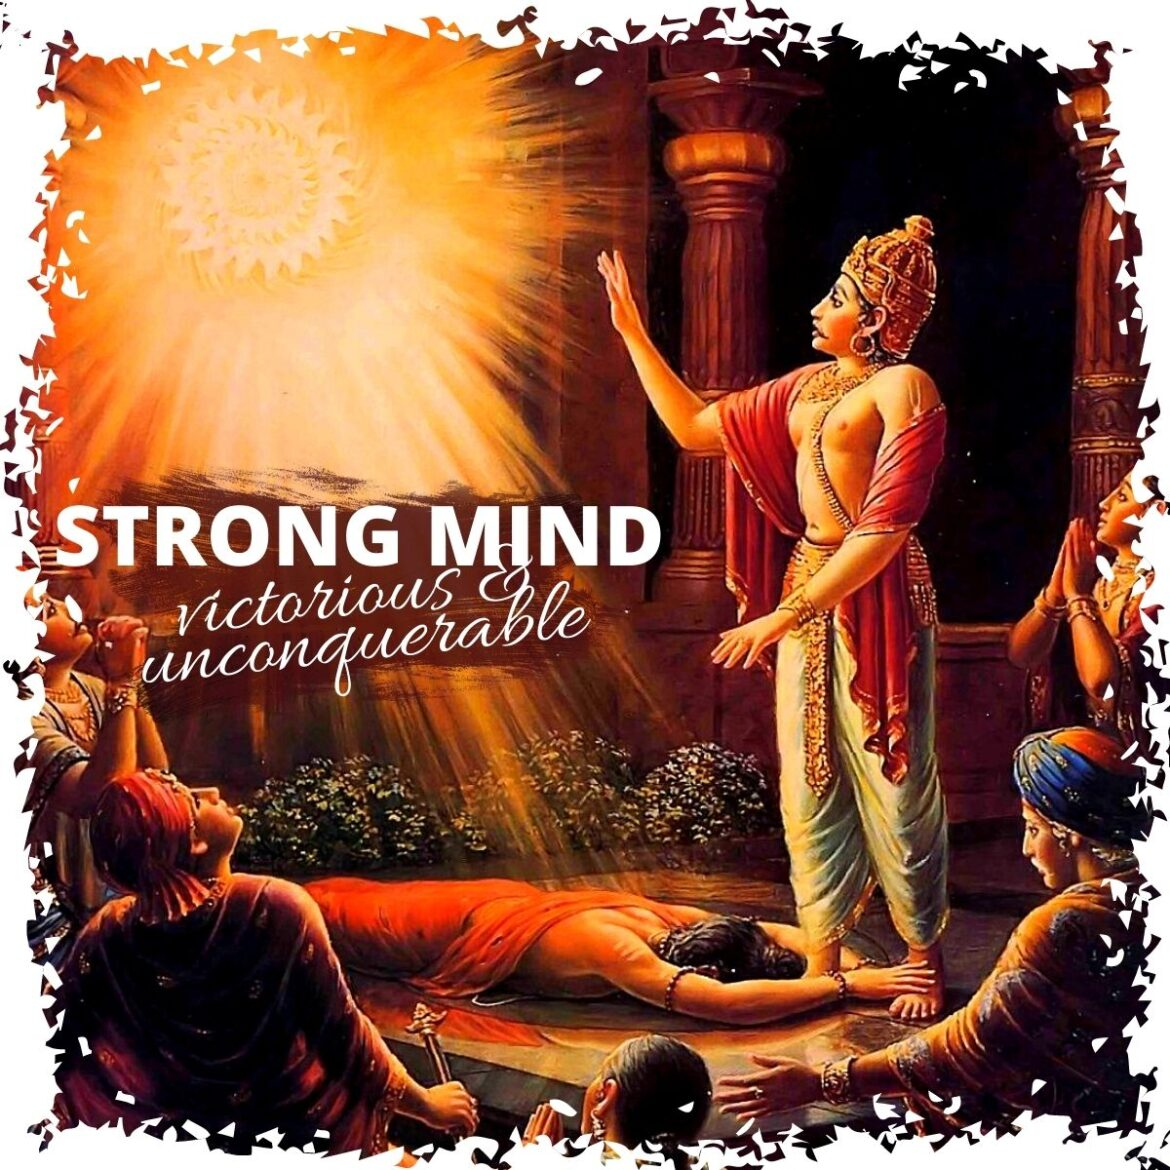 Strong Mind: Victorious & Unconquerable